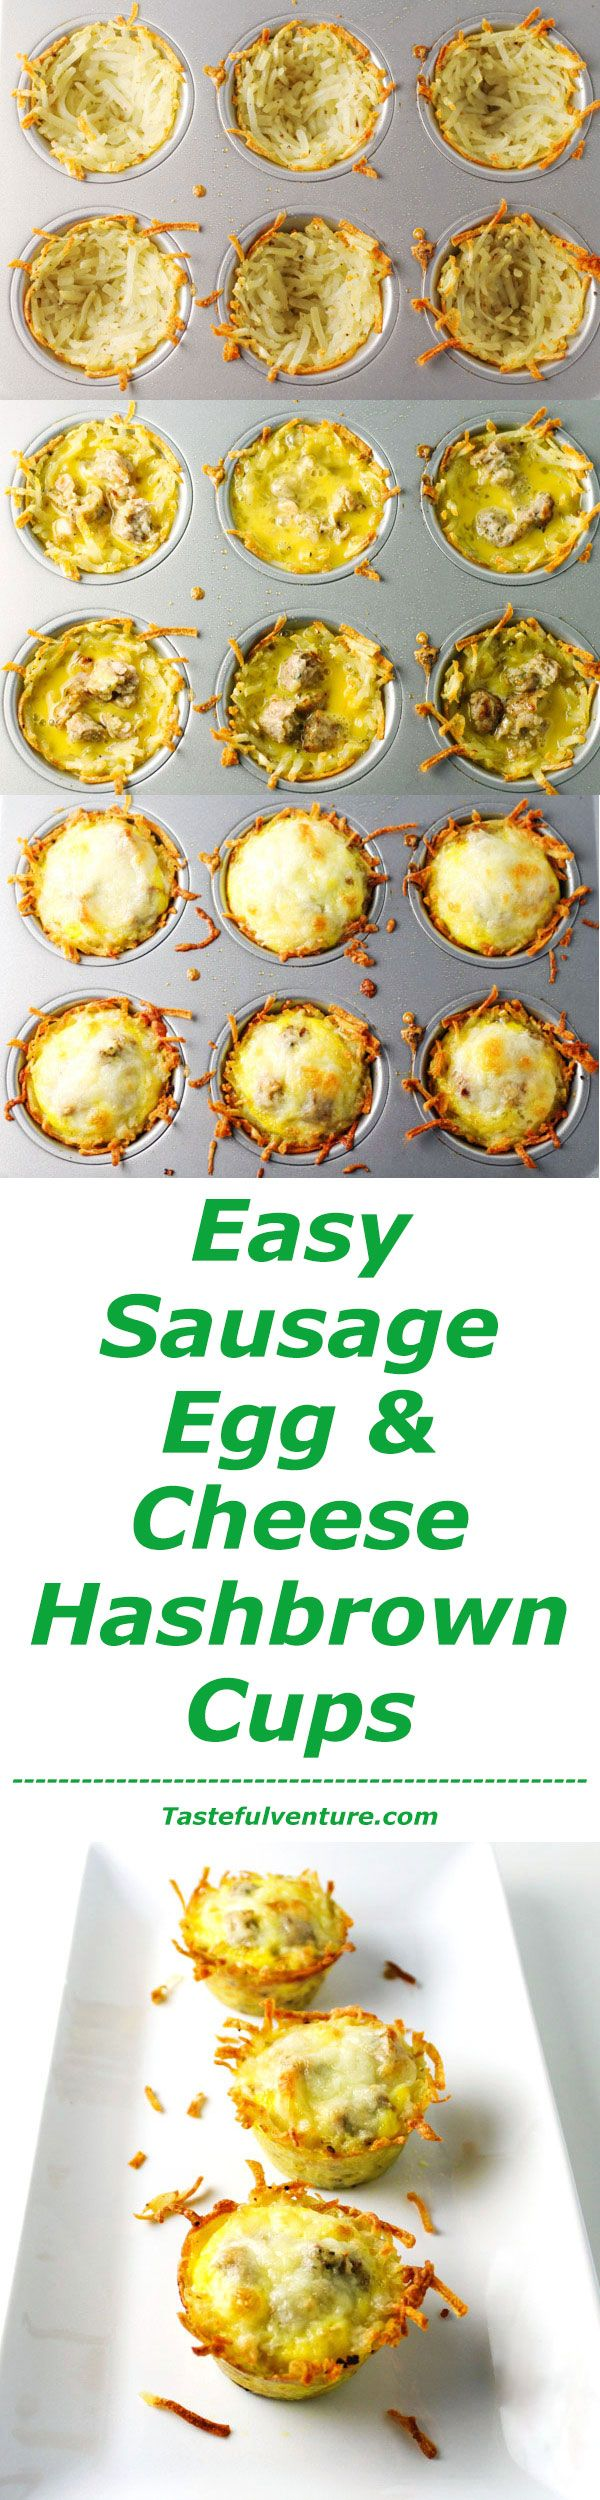 1000+ ideas about Hash Brown Cups on Pinterest | Brown ...